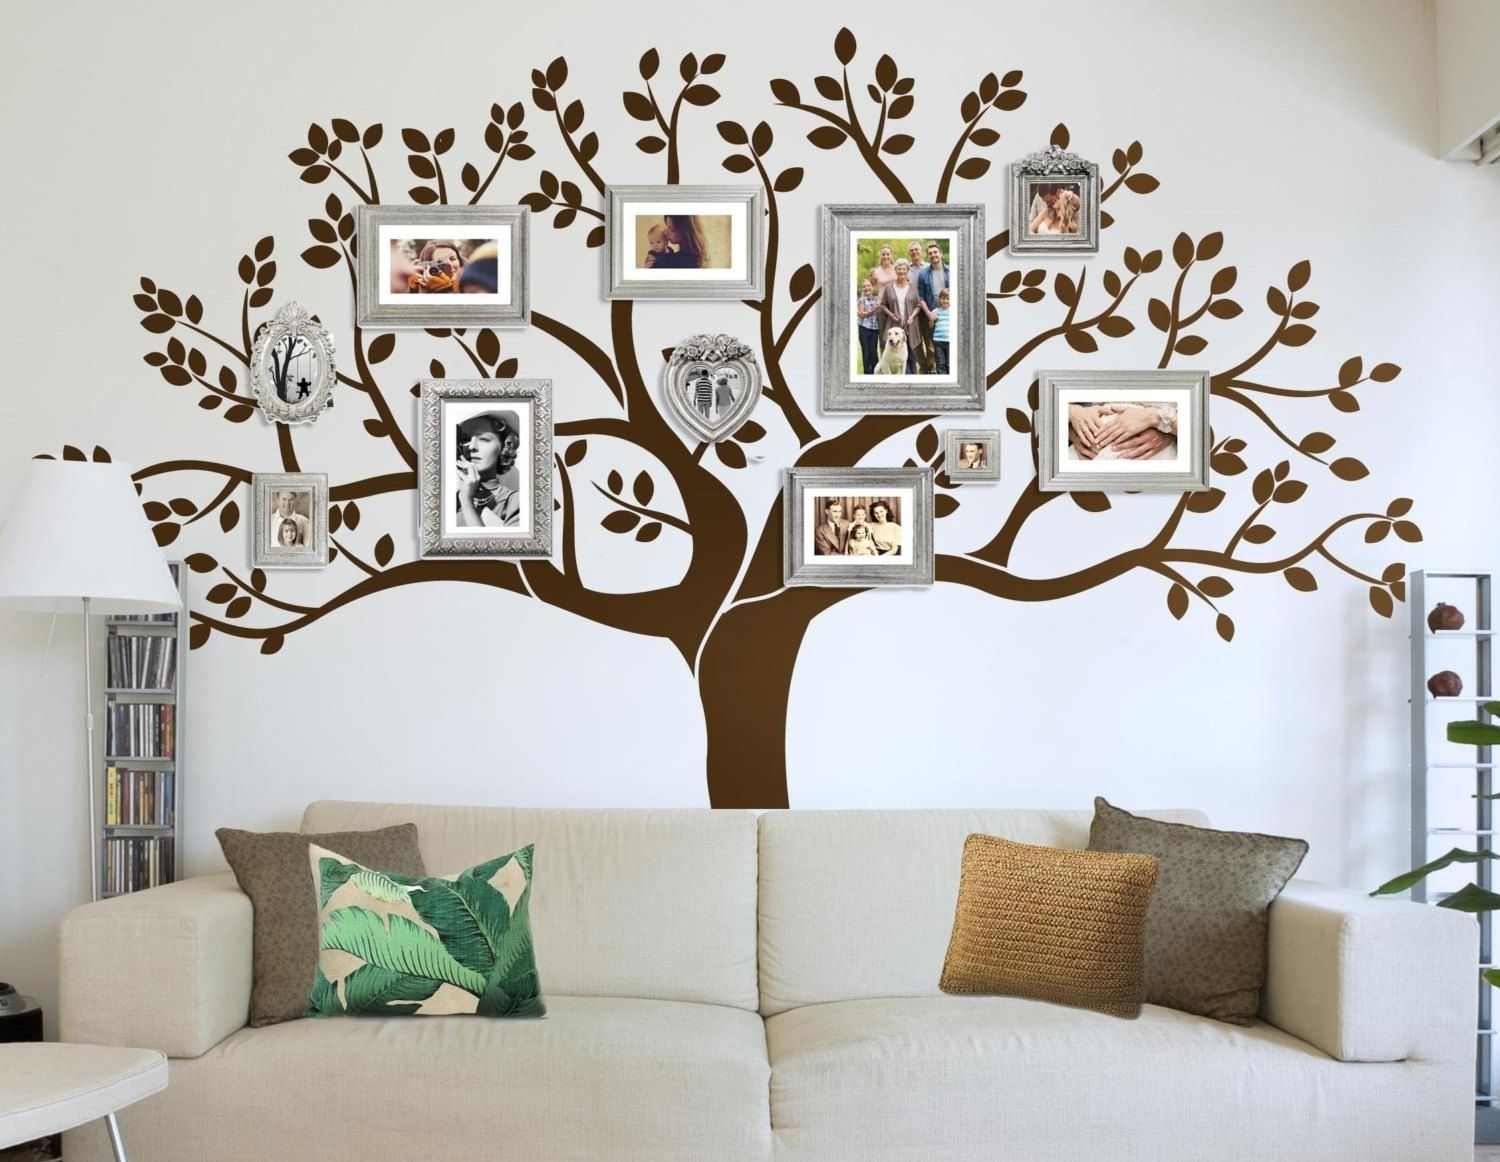 Unique Family Tree Wall Art Decal Collection | Wall Decoration 2018 Inside 2017 Family Tree Wall Art (View 14 of 15)